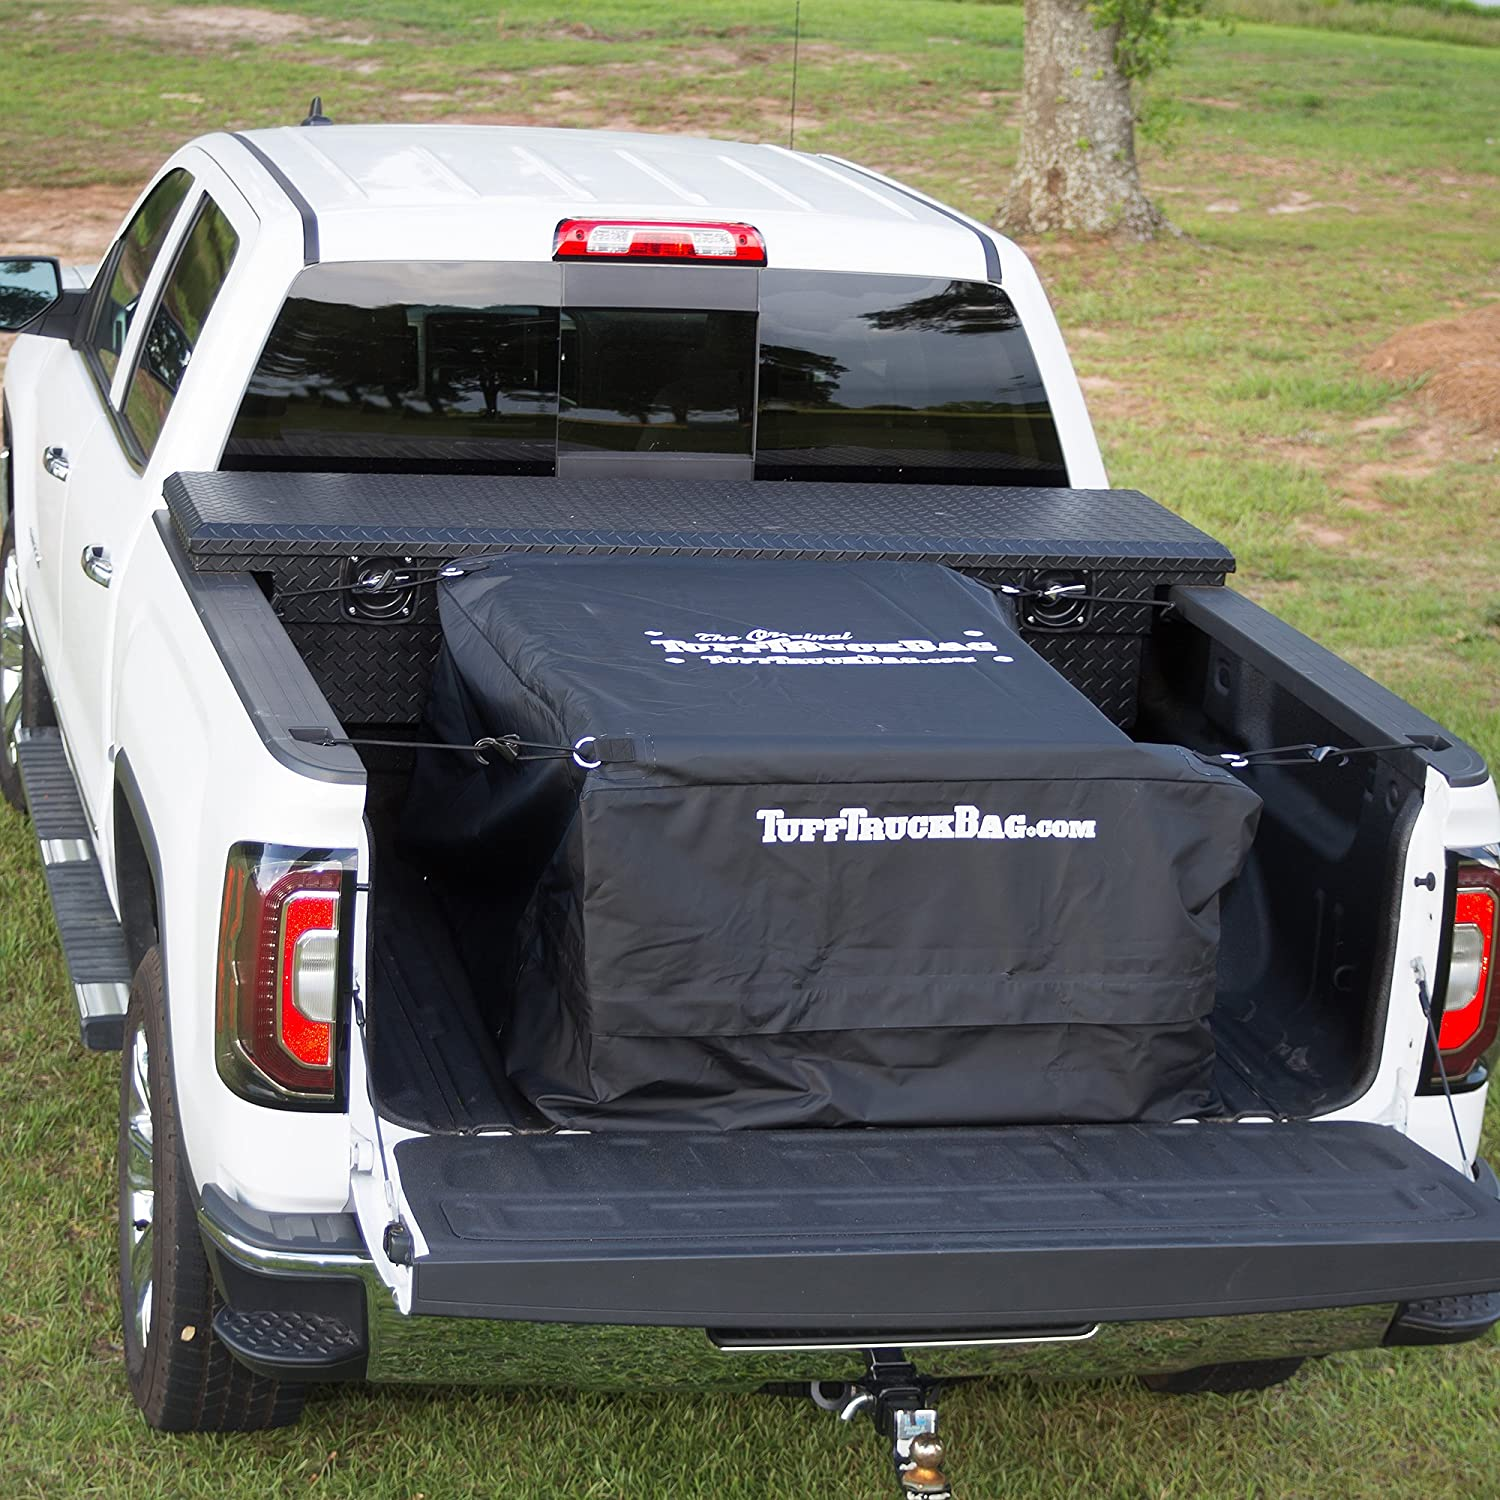 Tuff Truck Heavy-Duty Waterproof Bag